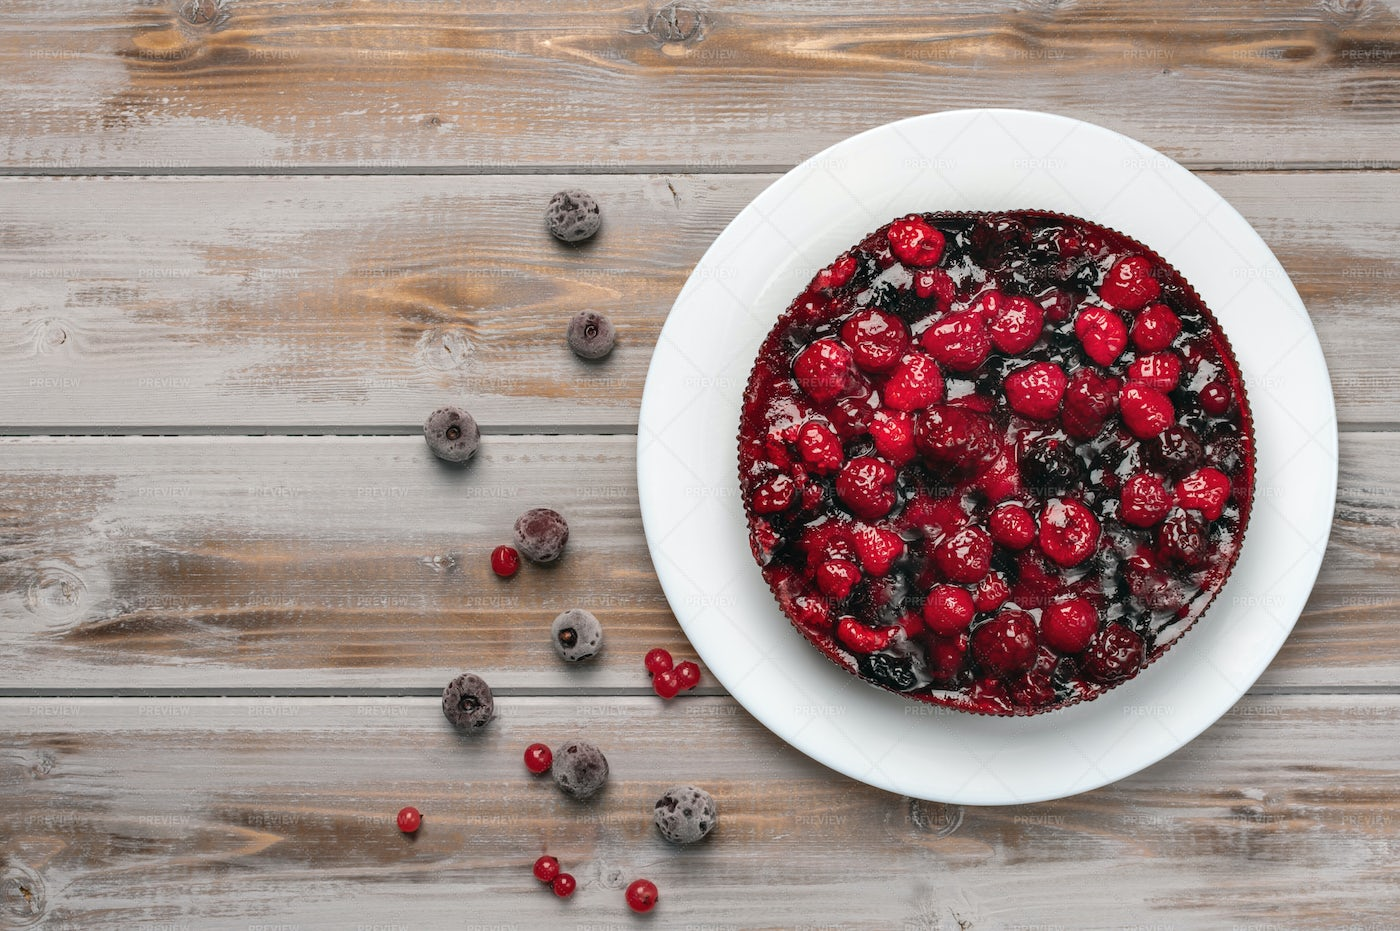 Pie With Berries Top View: Stock Photos